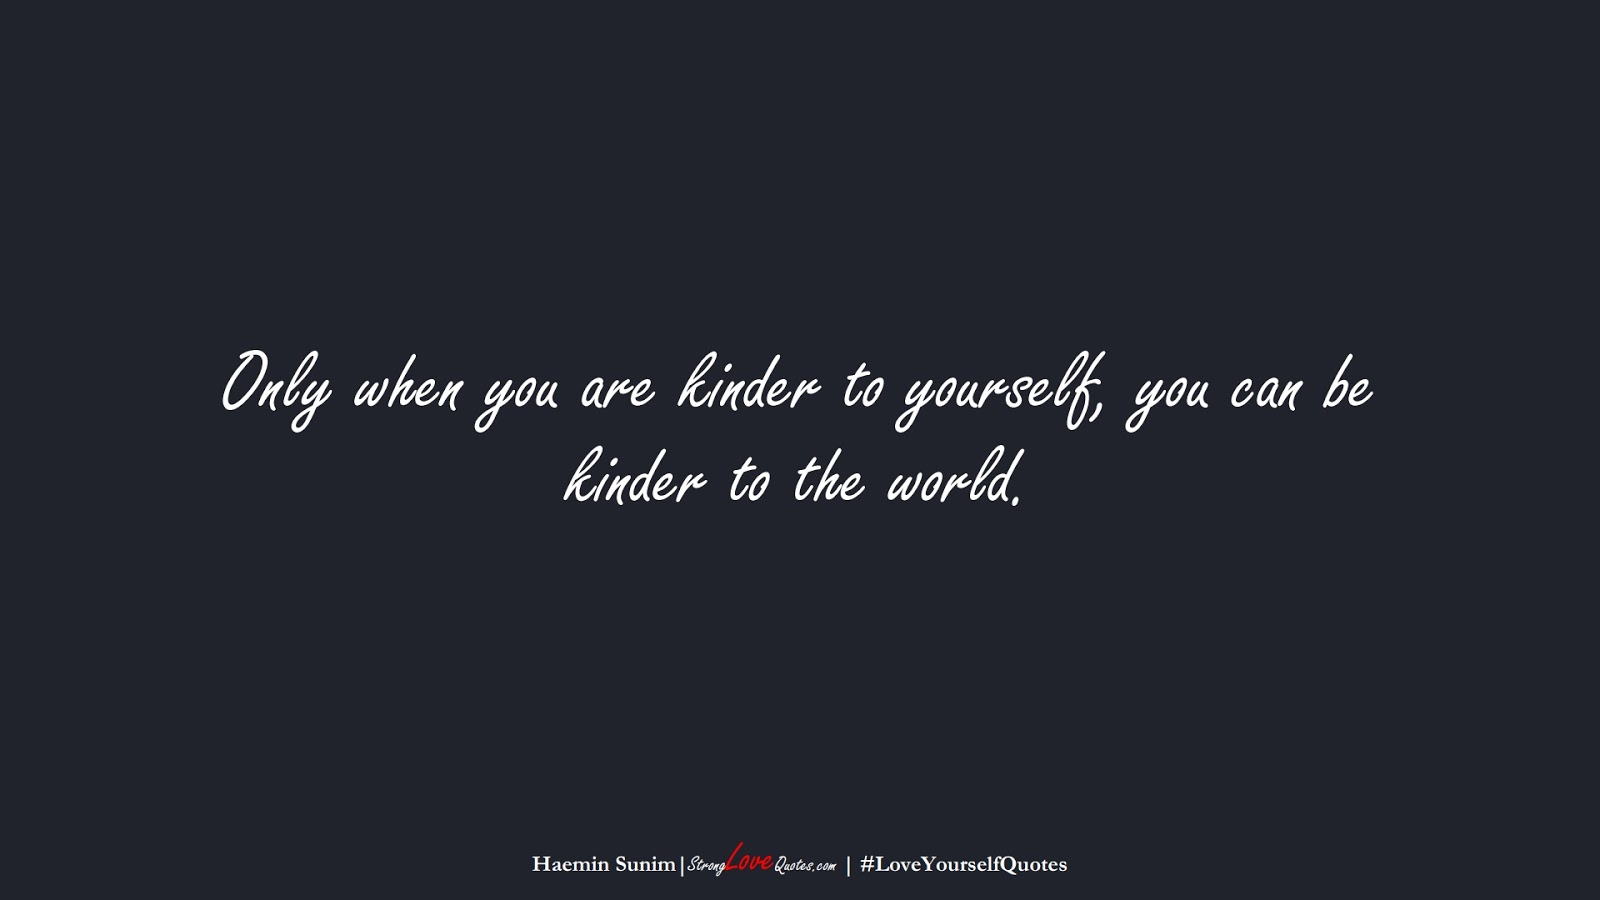 Only when you are kinder to yourself, you can be kinder to the world. (Haemin Sunim);  #LoveYourselfQuotes